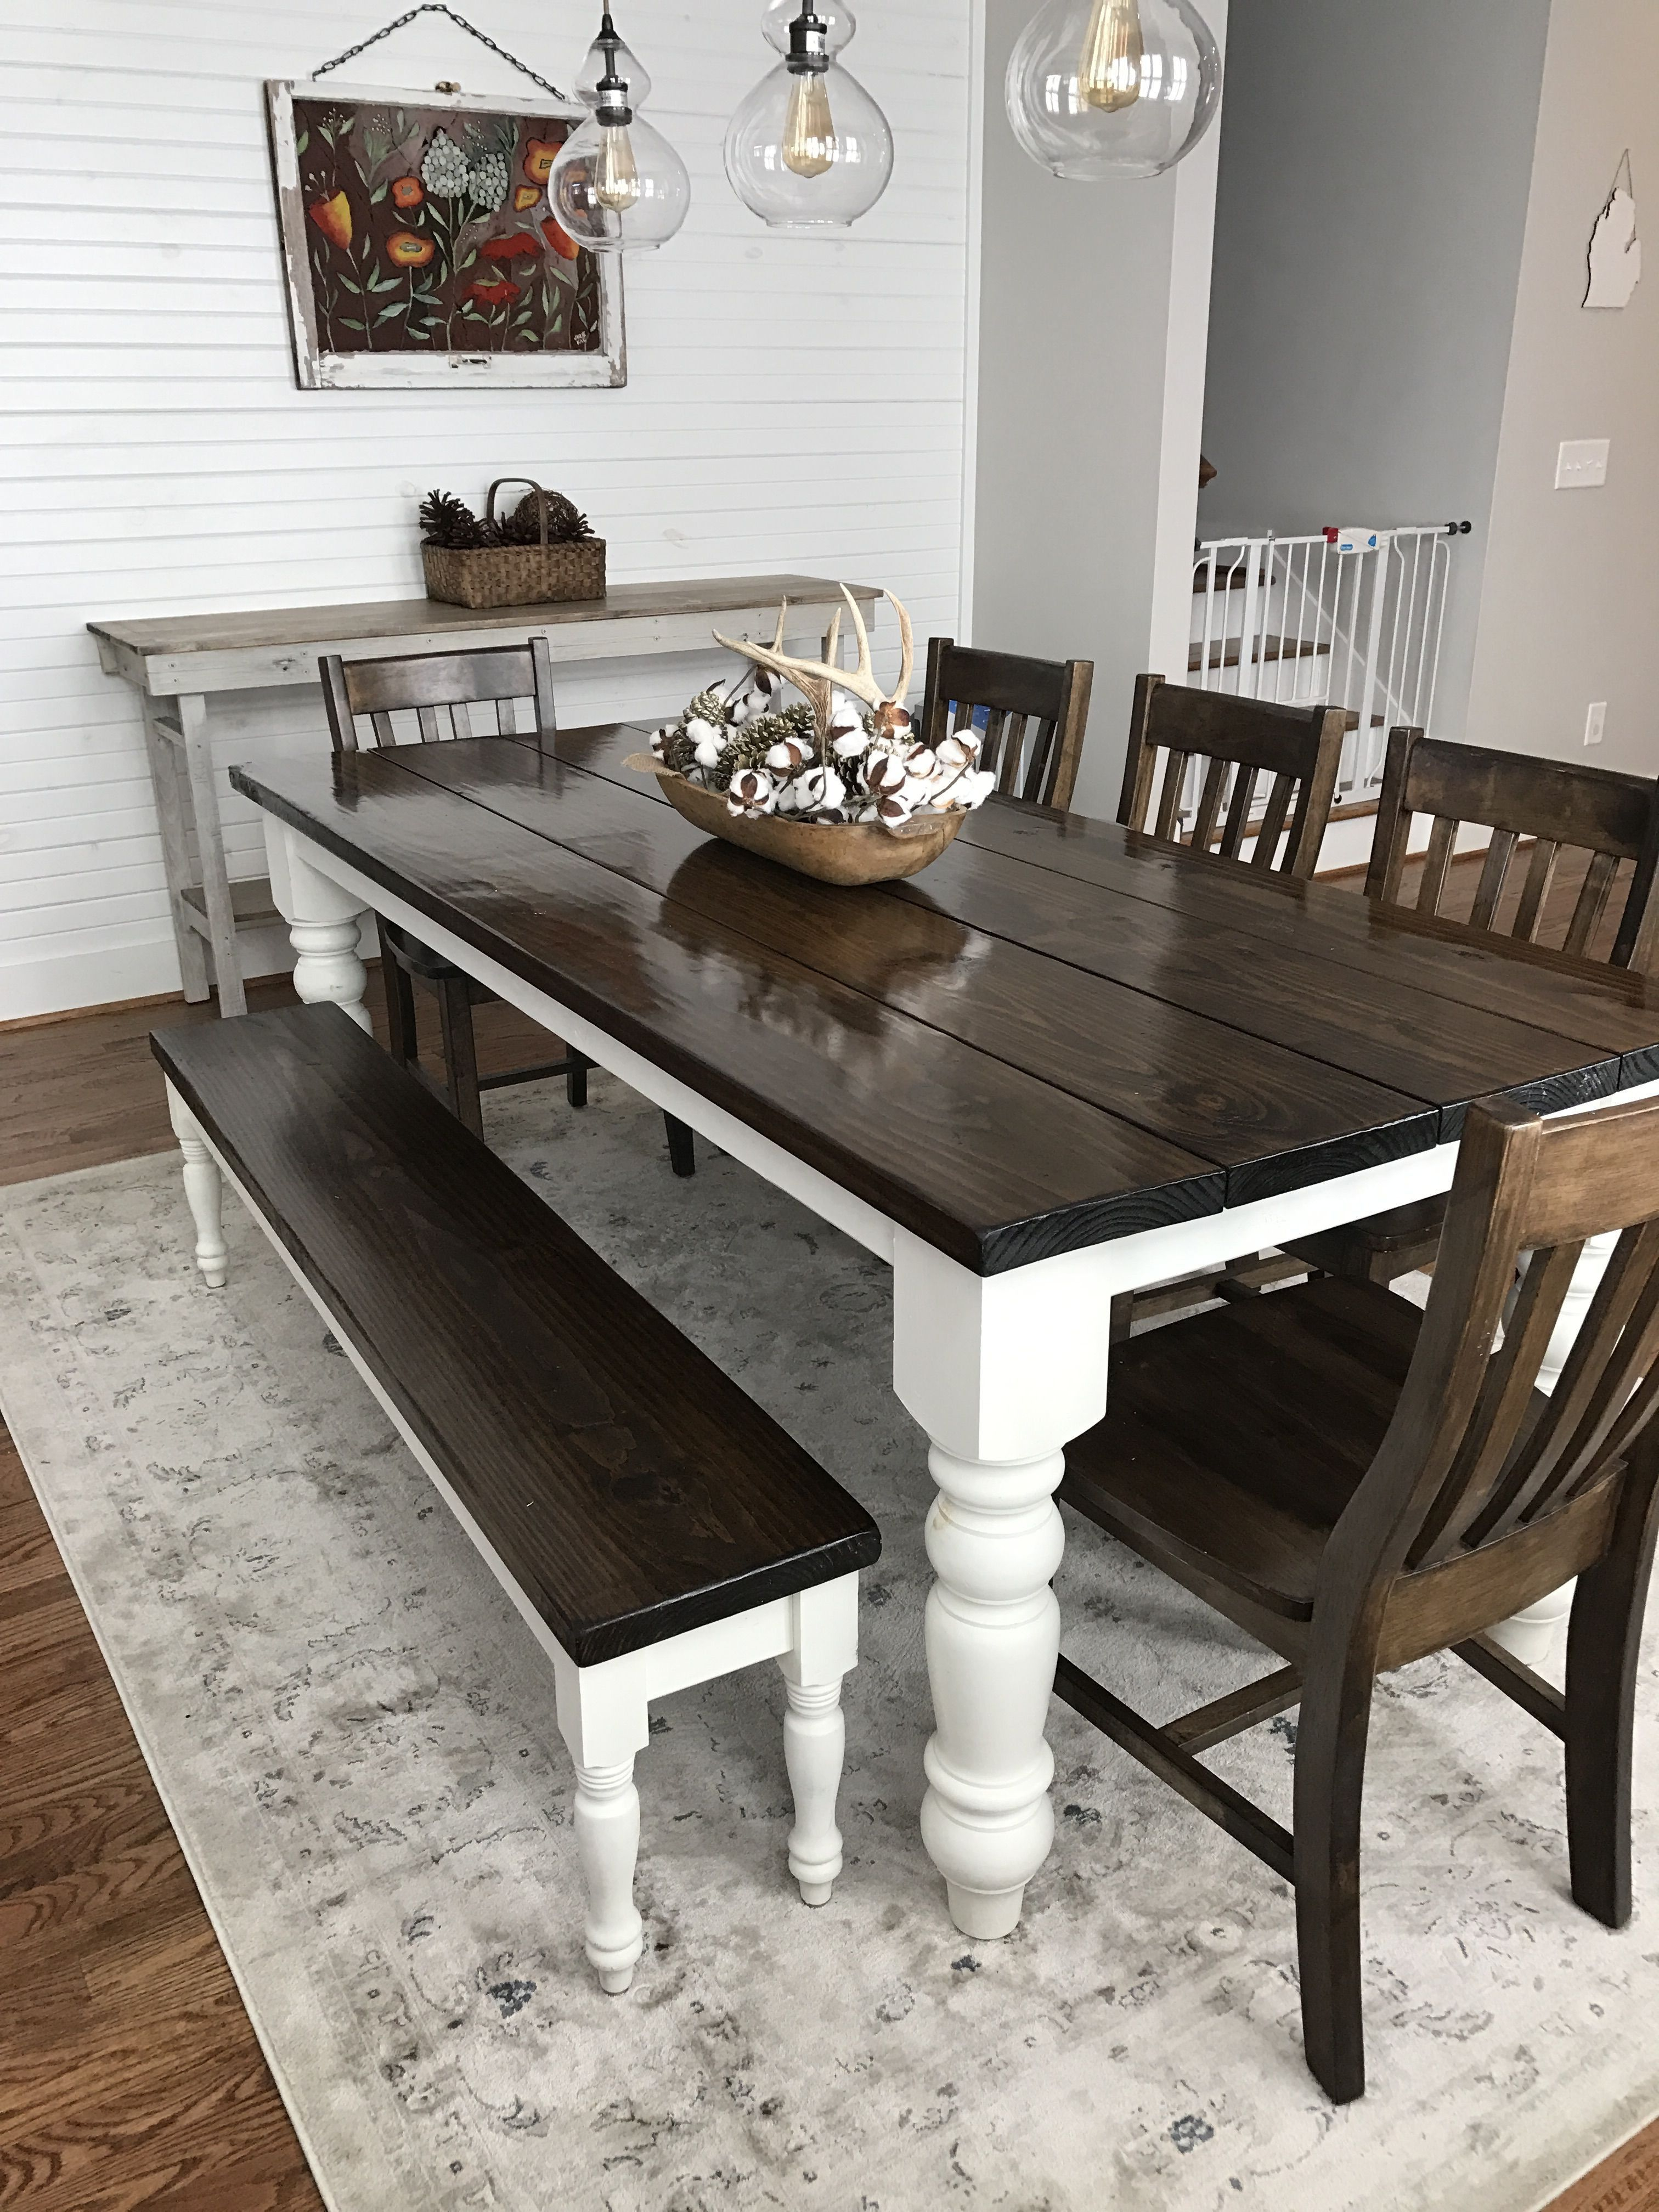 New Farmhouse Kitchen Table Cheap The Most Stylish And Attractive Farmhouse Kit Dining Room Makeover Farmhouse Dining Room Table Modern Farmhouse Dining Room